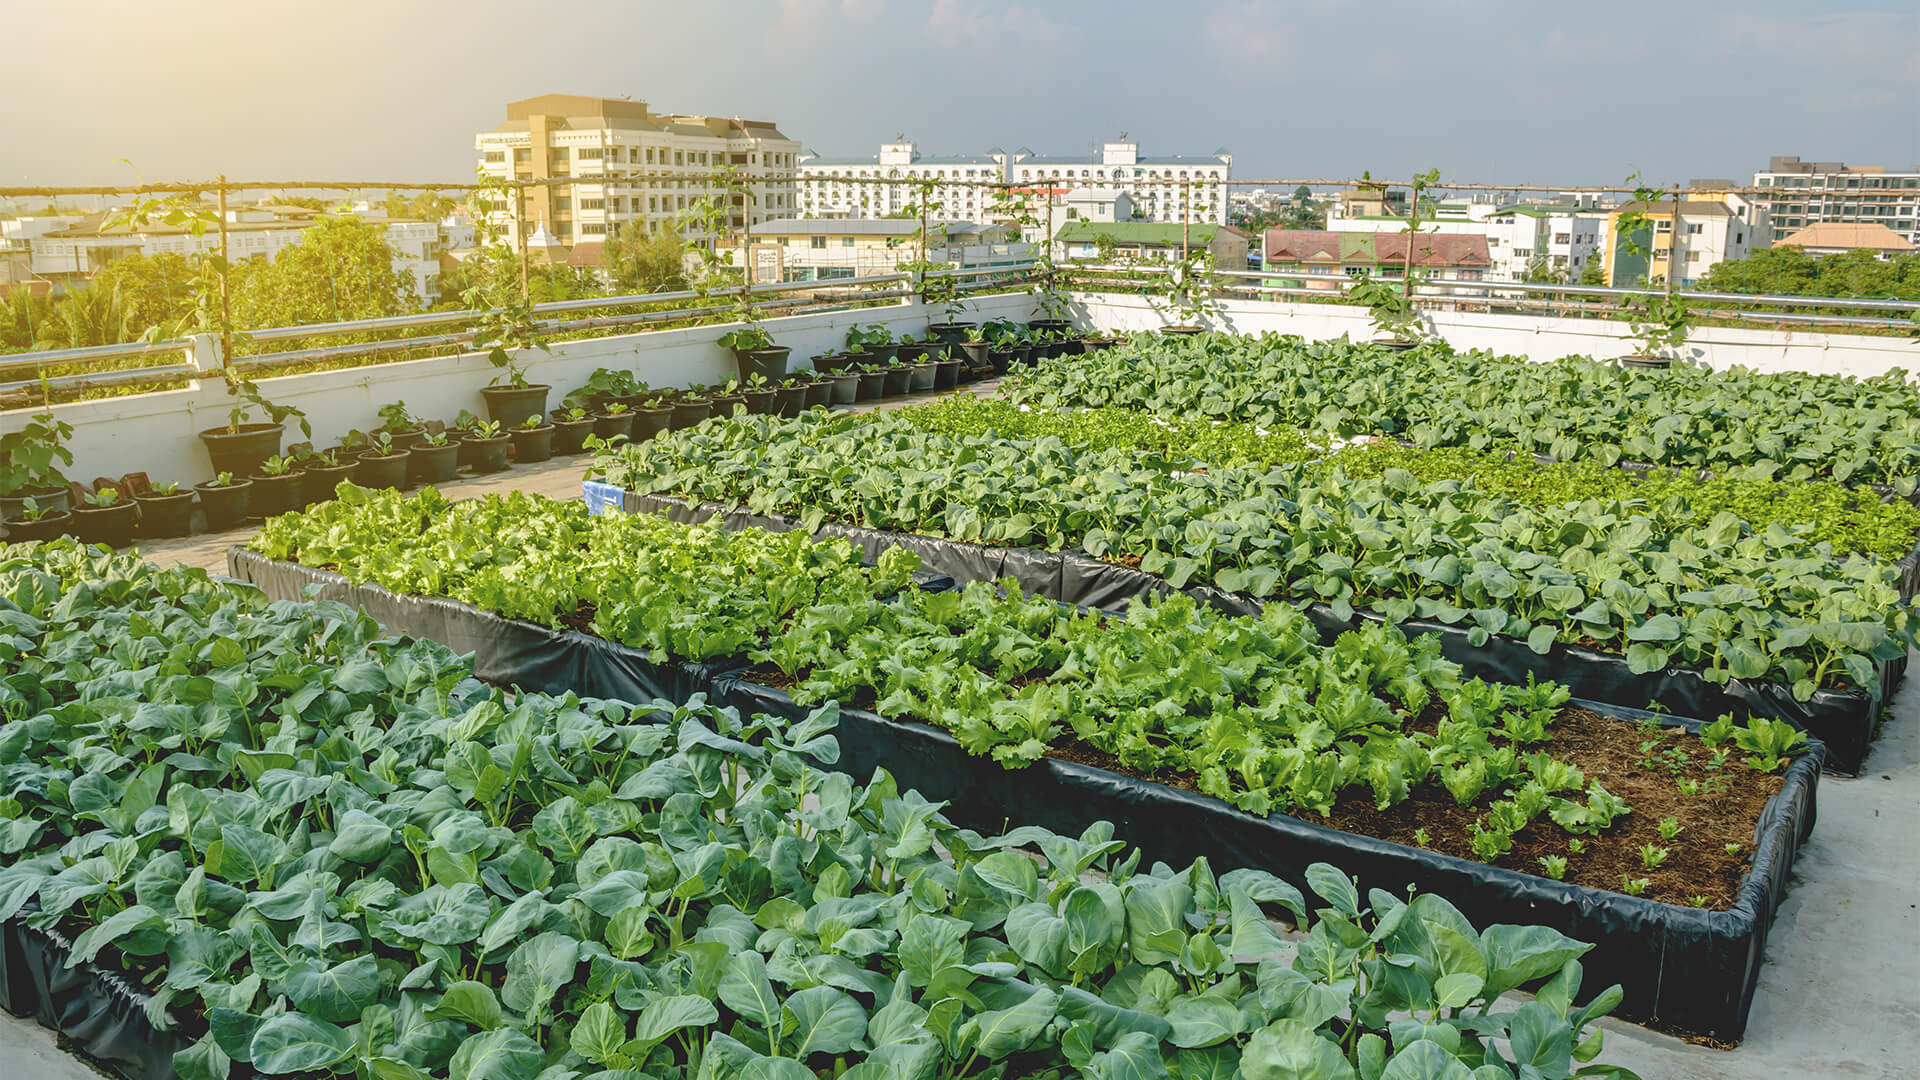 Rooftop vegetable garden with a city landscape in the background, and a sunset